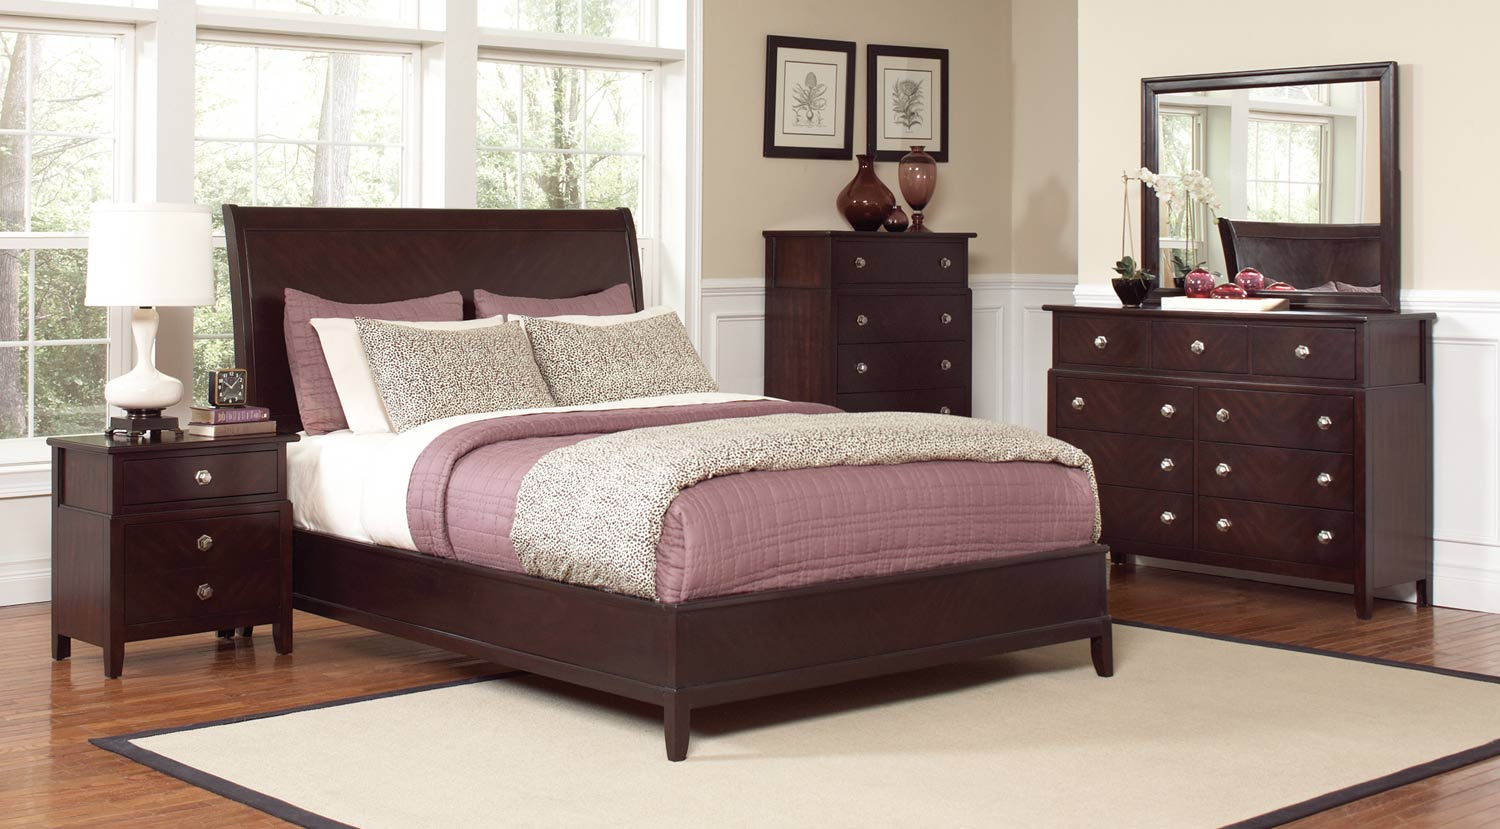 Coaster Albright Bedroom Set - Cherry